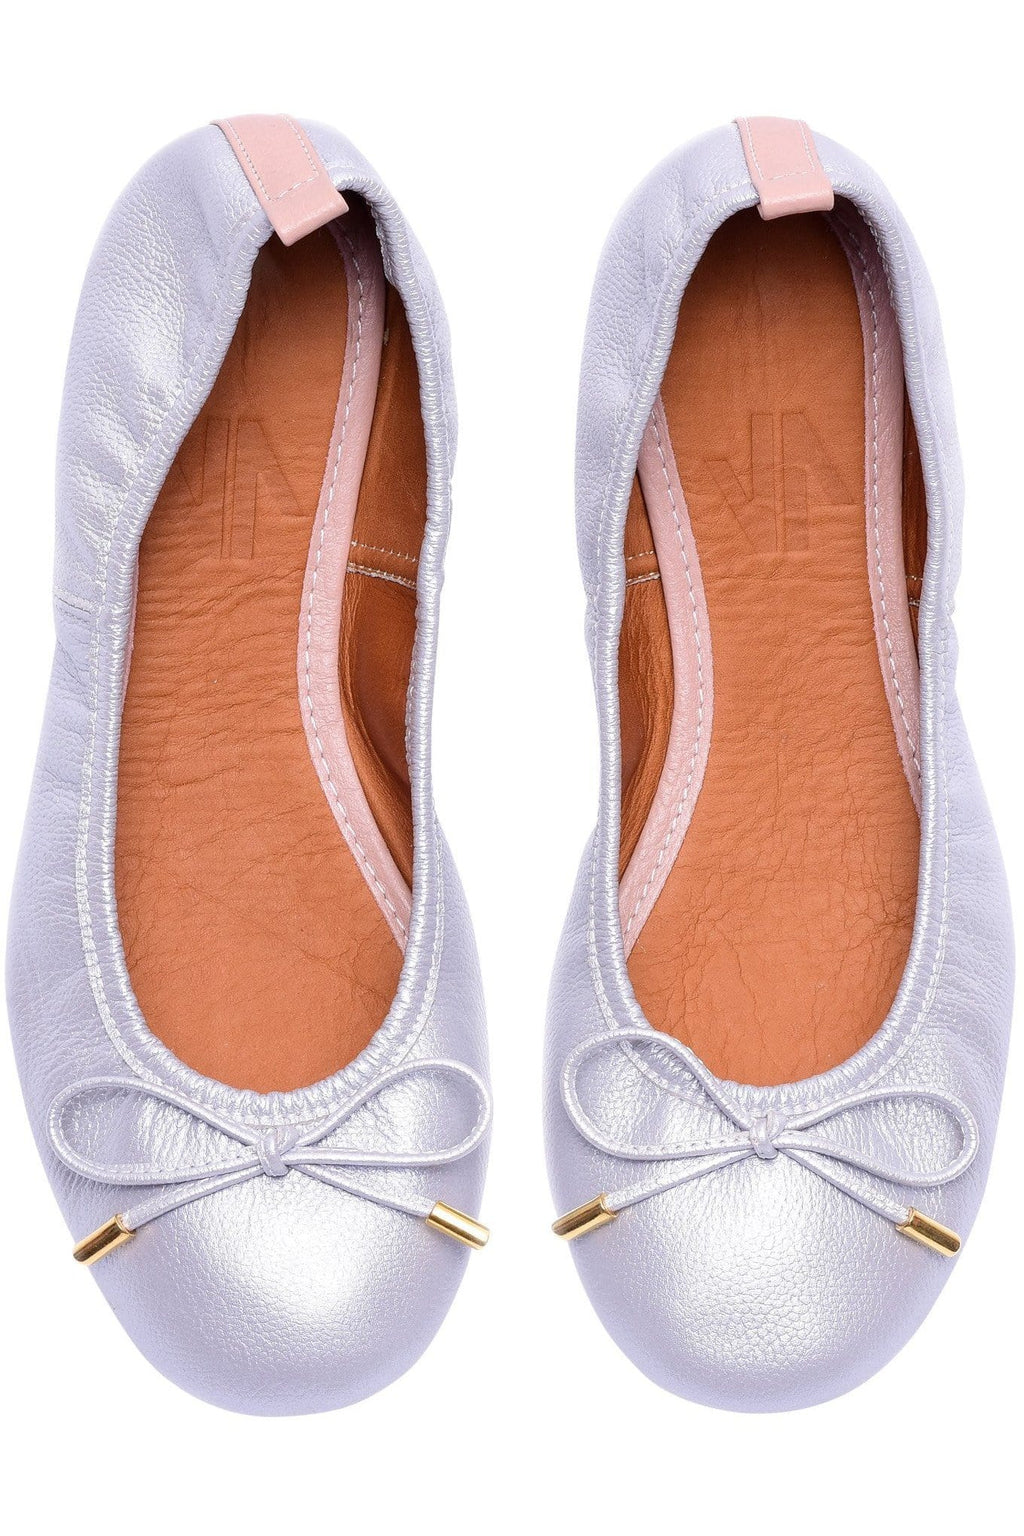 Columbian Leather Ballerina Flats in Silver - Himelhoch's